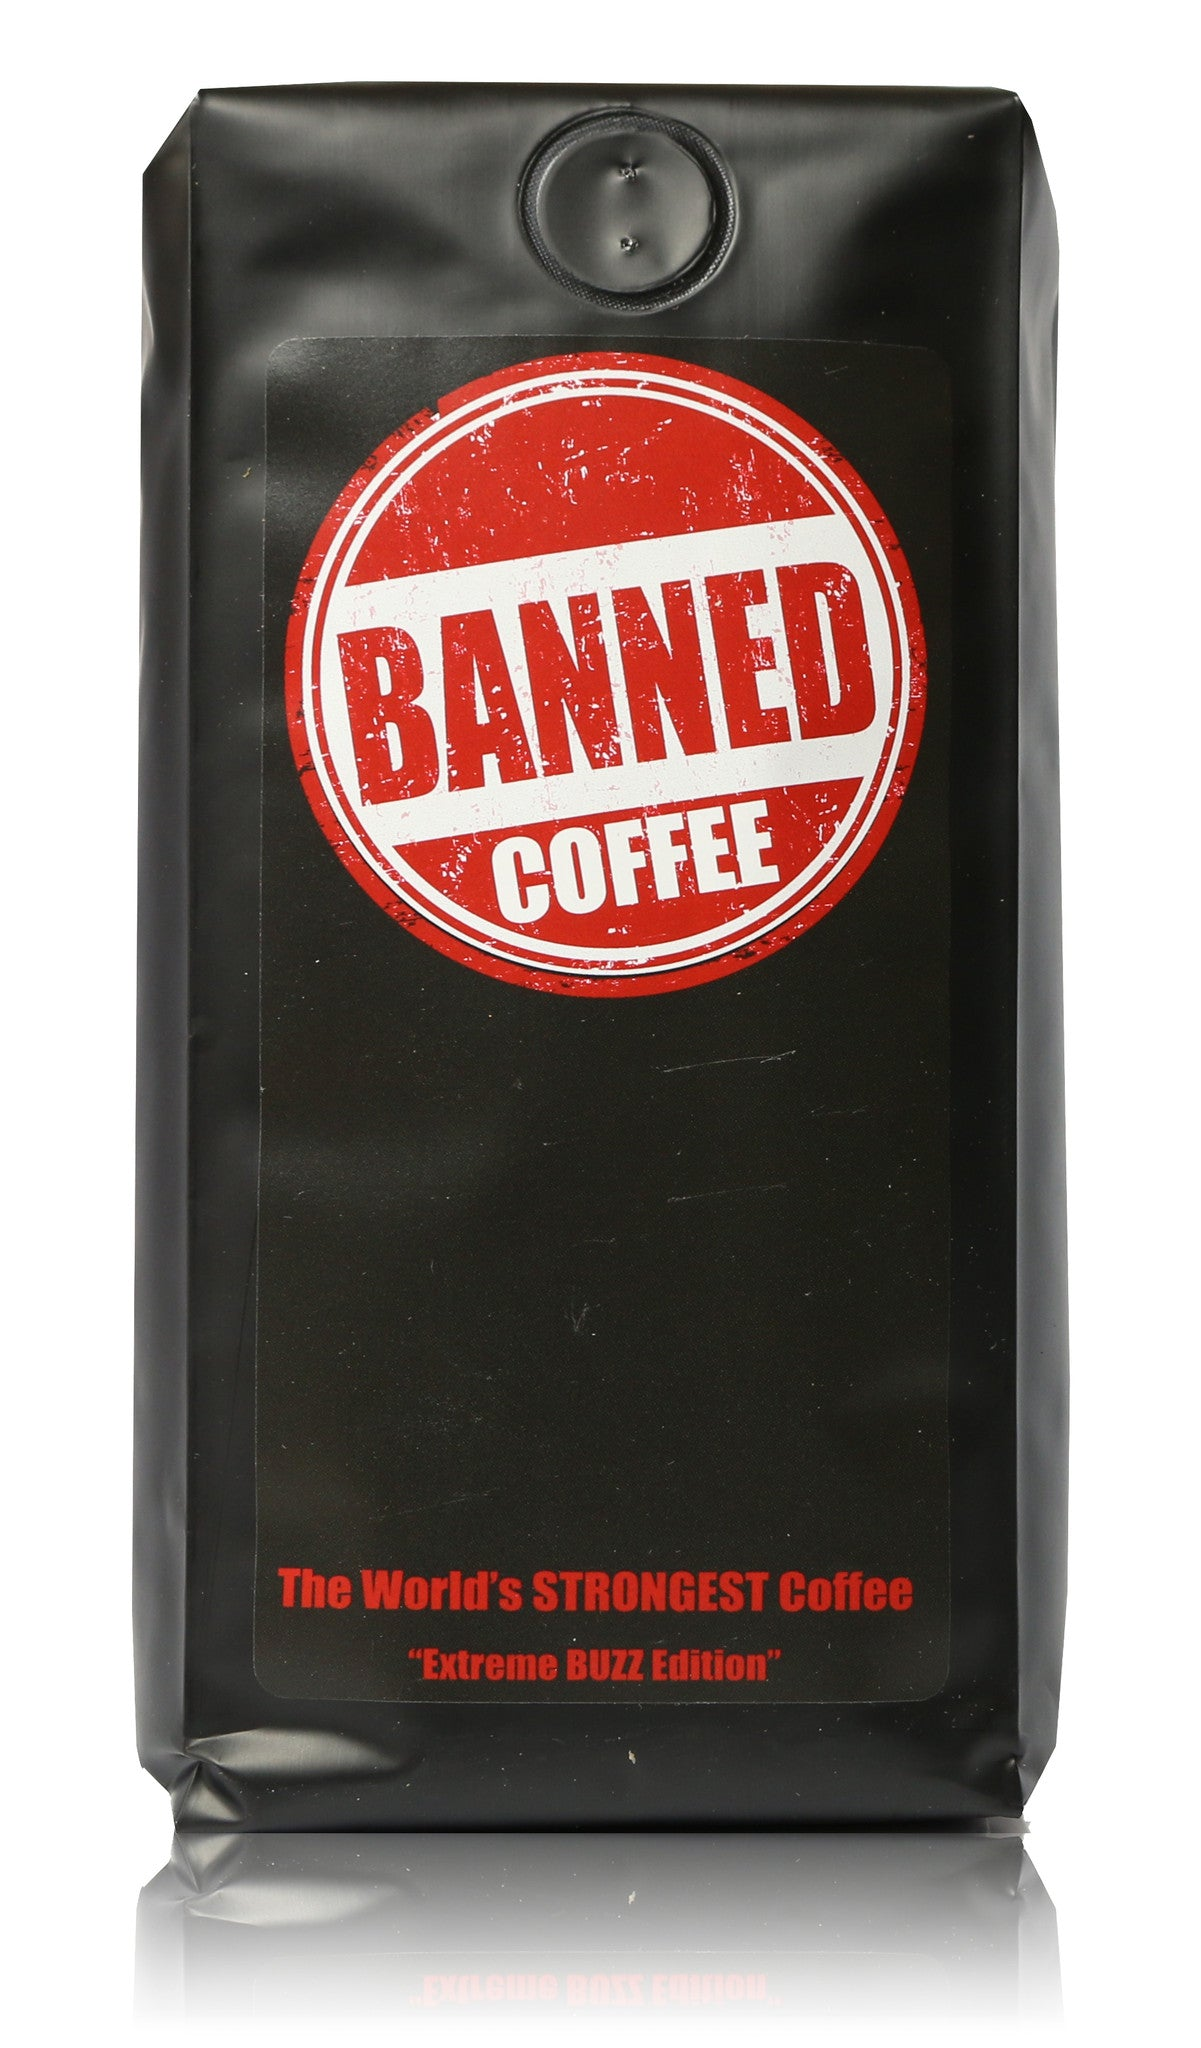 Banned Coffee - The strongest most delicious coffee in the world. Our best blend of arabica and robusta gourmet coffee beans. Smooth and delicious medium dark roast.